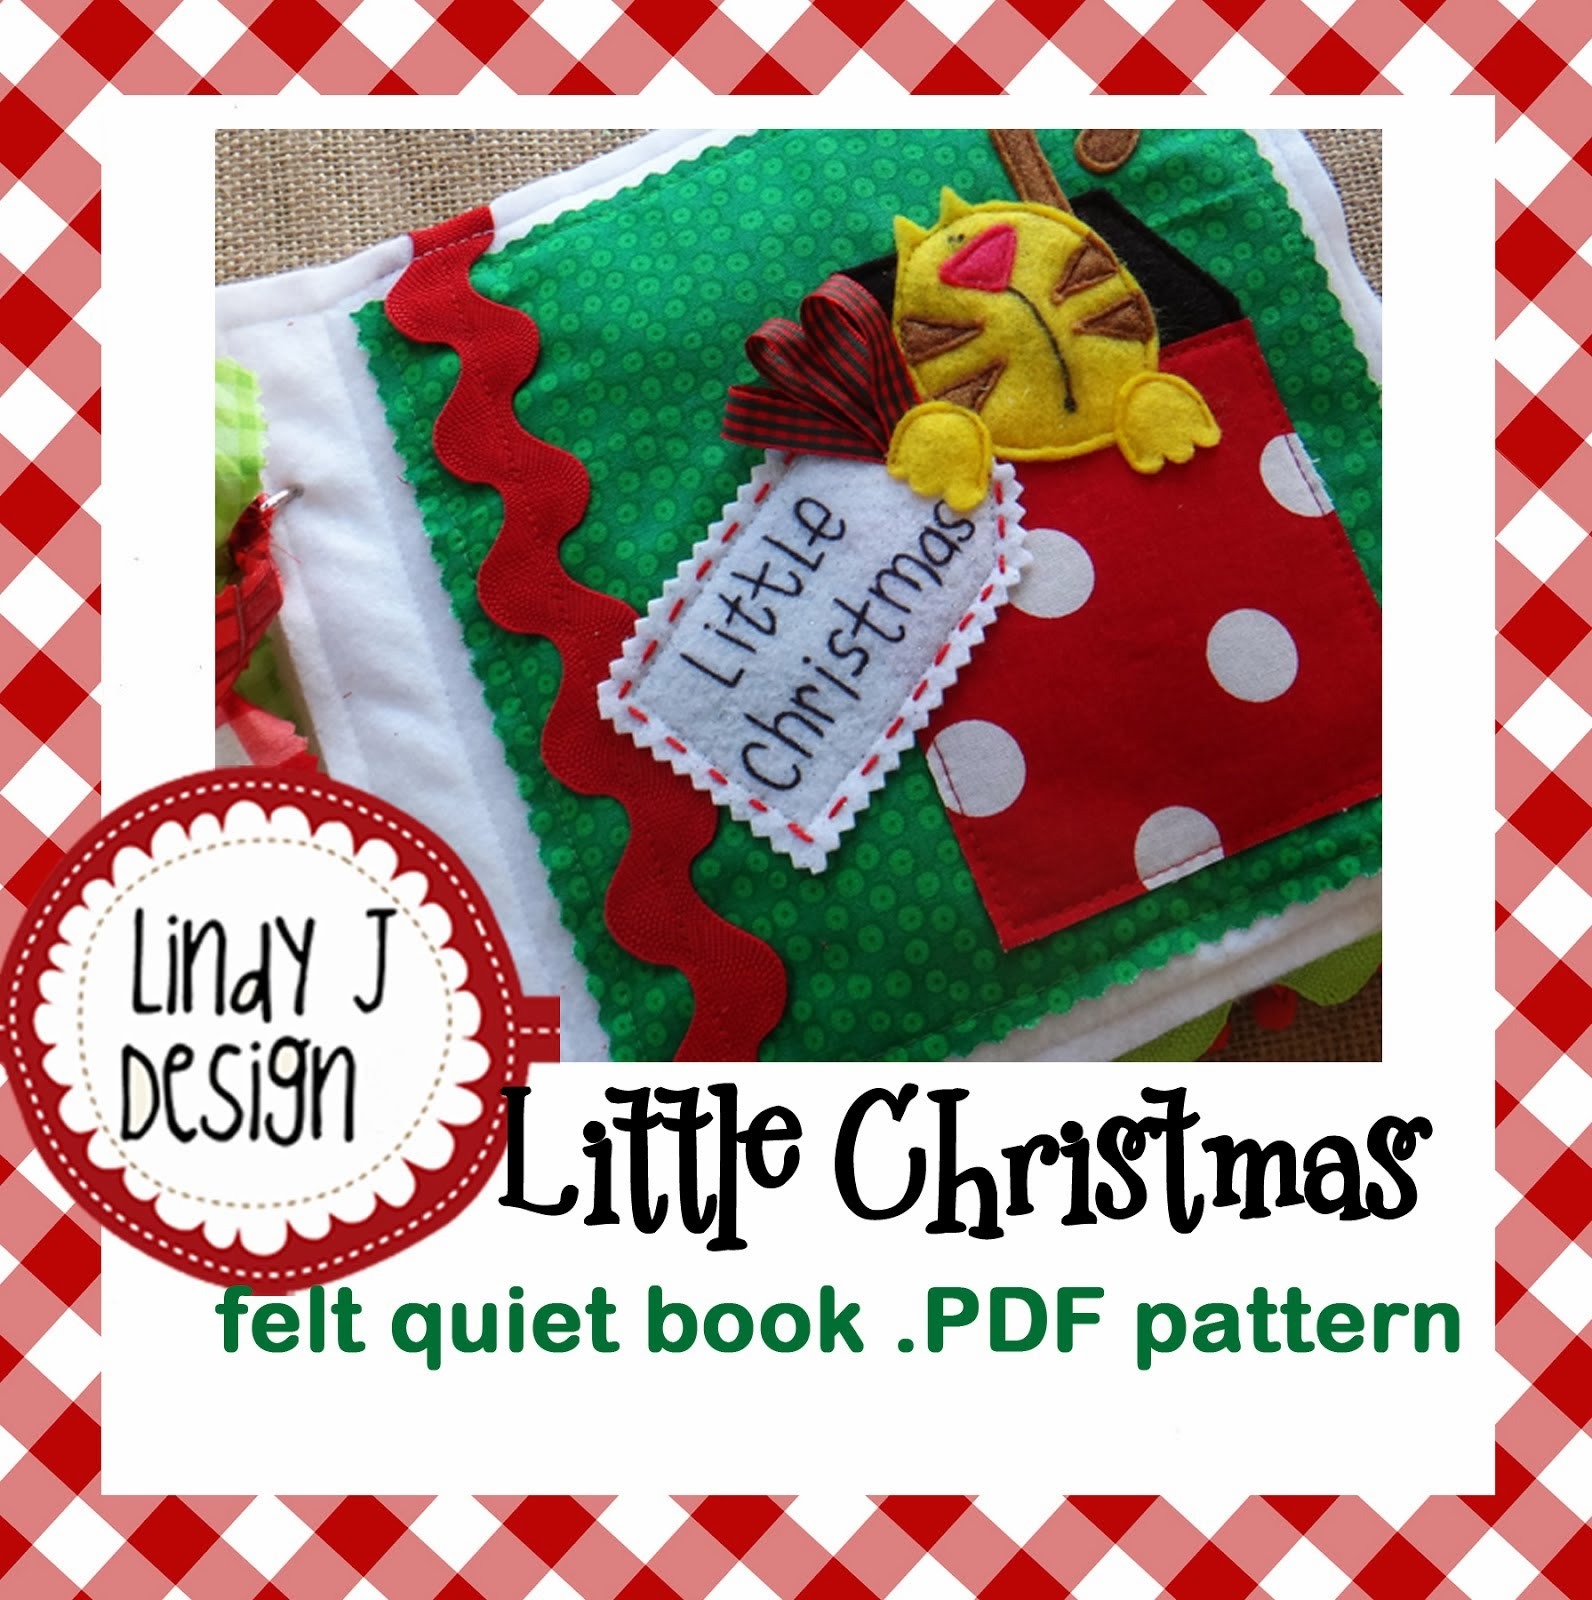 Little Christmas .PDF pattern